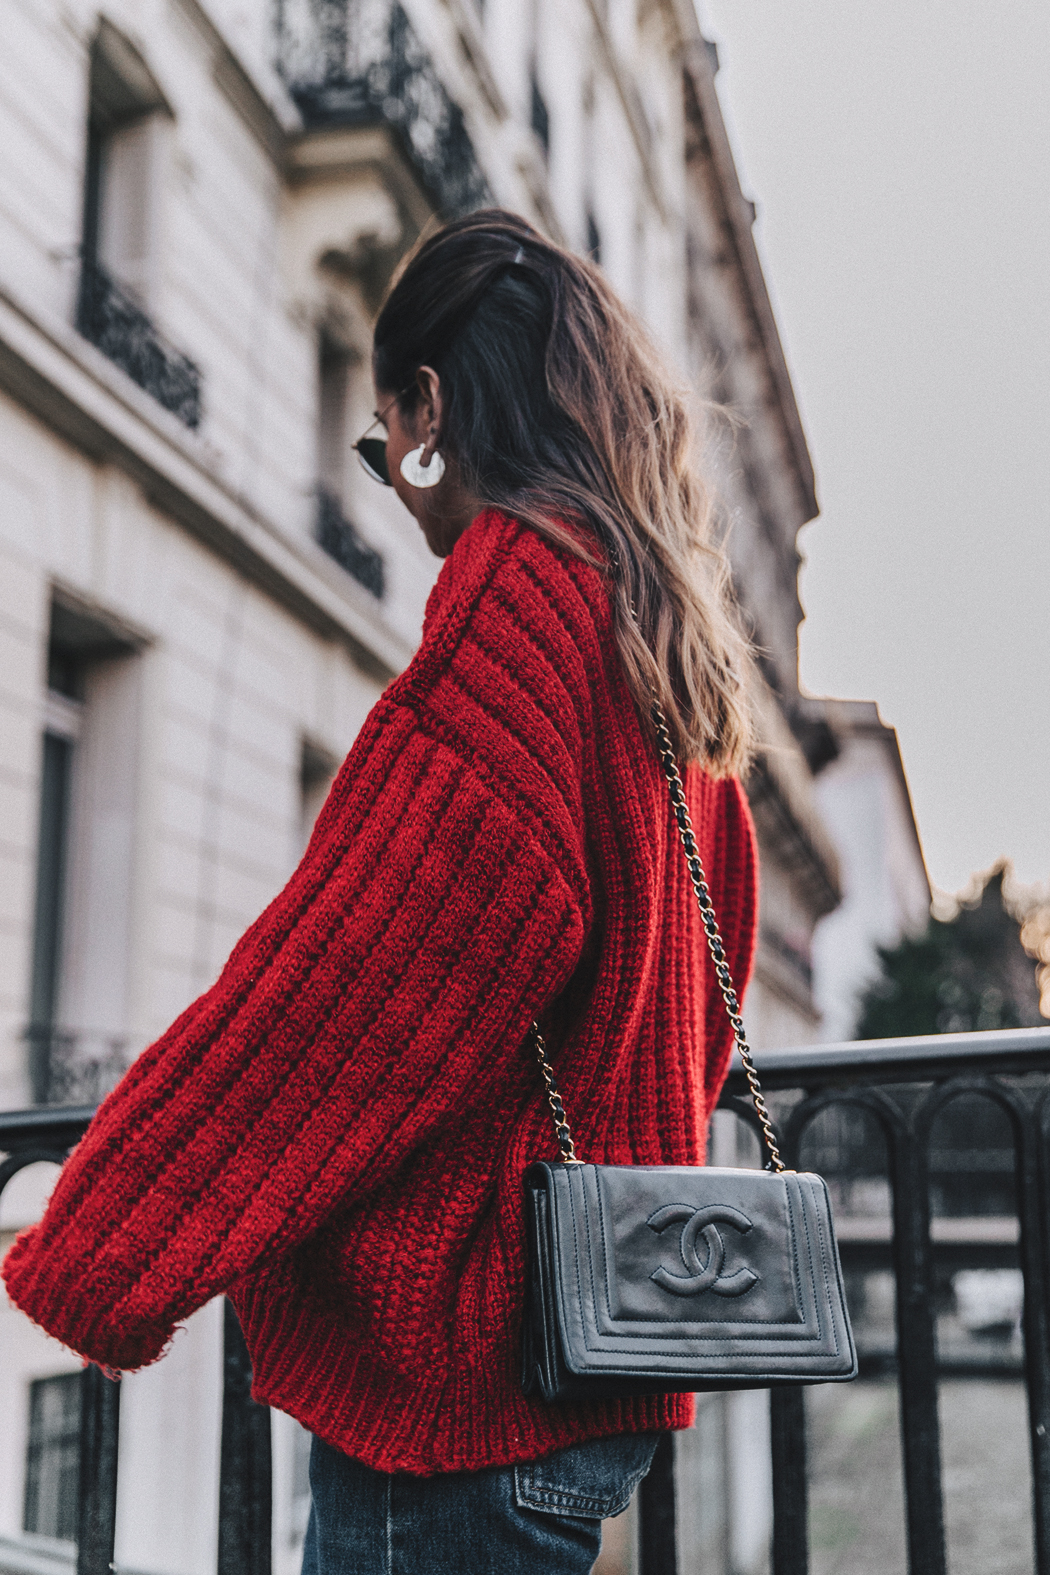 RED-KNITWEAR-Levis-Jeans-Red_Boots-Outfit-Street_Style-Levis_Vintage-23